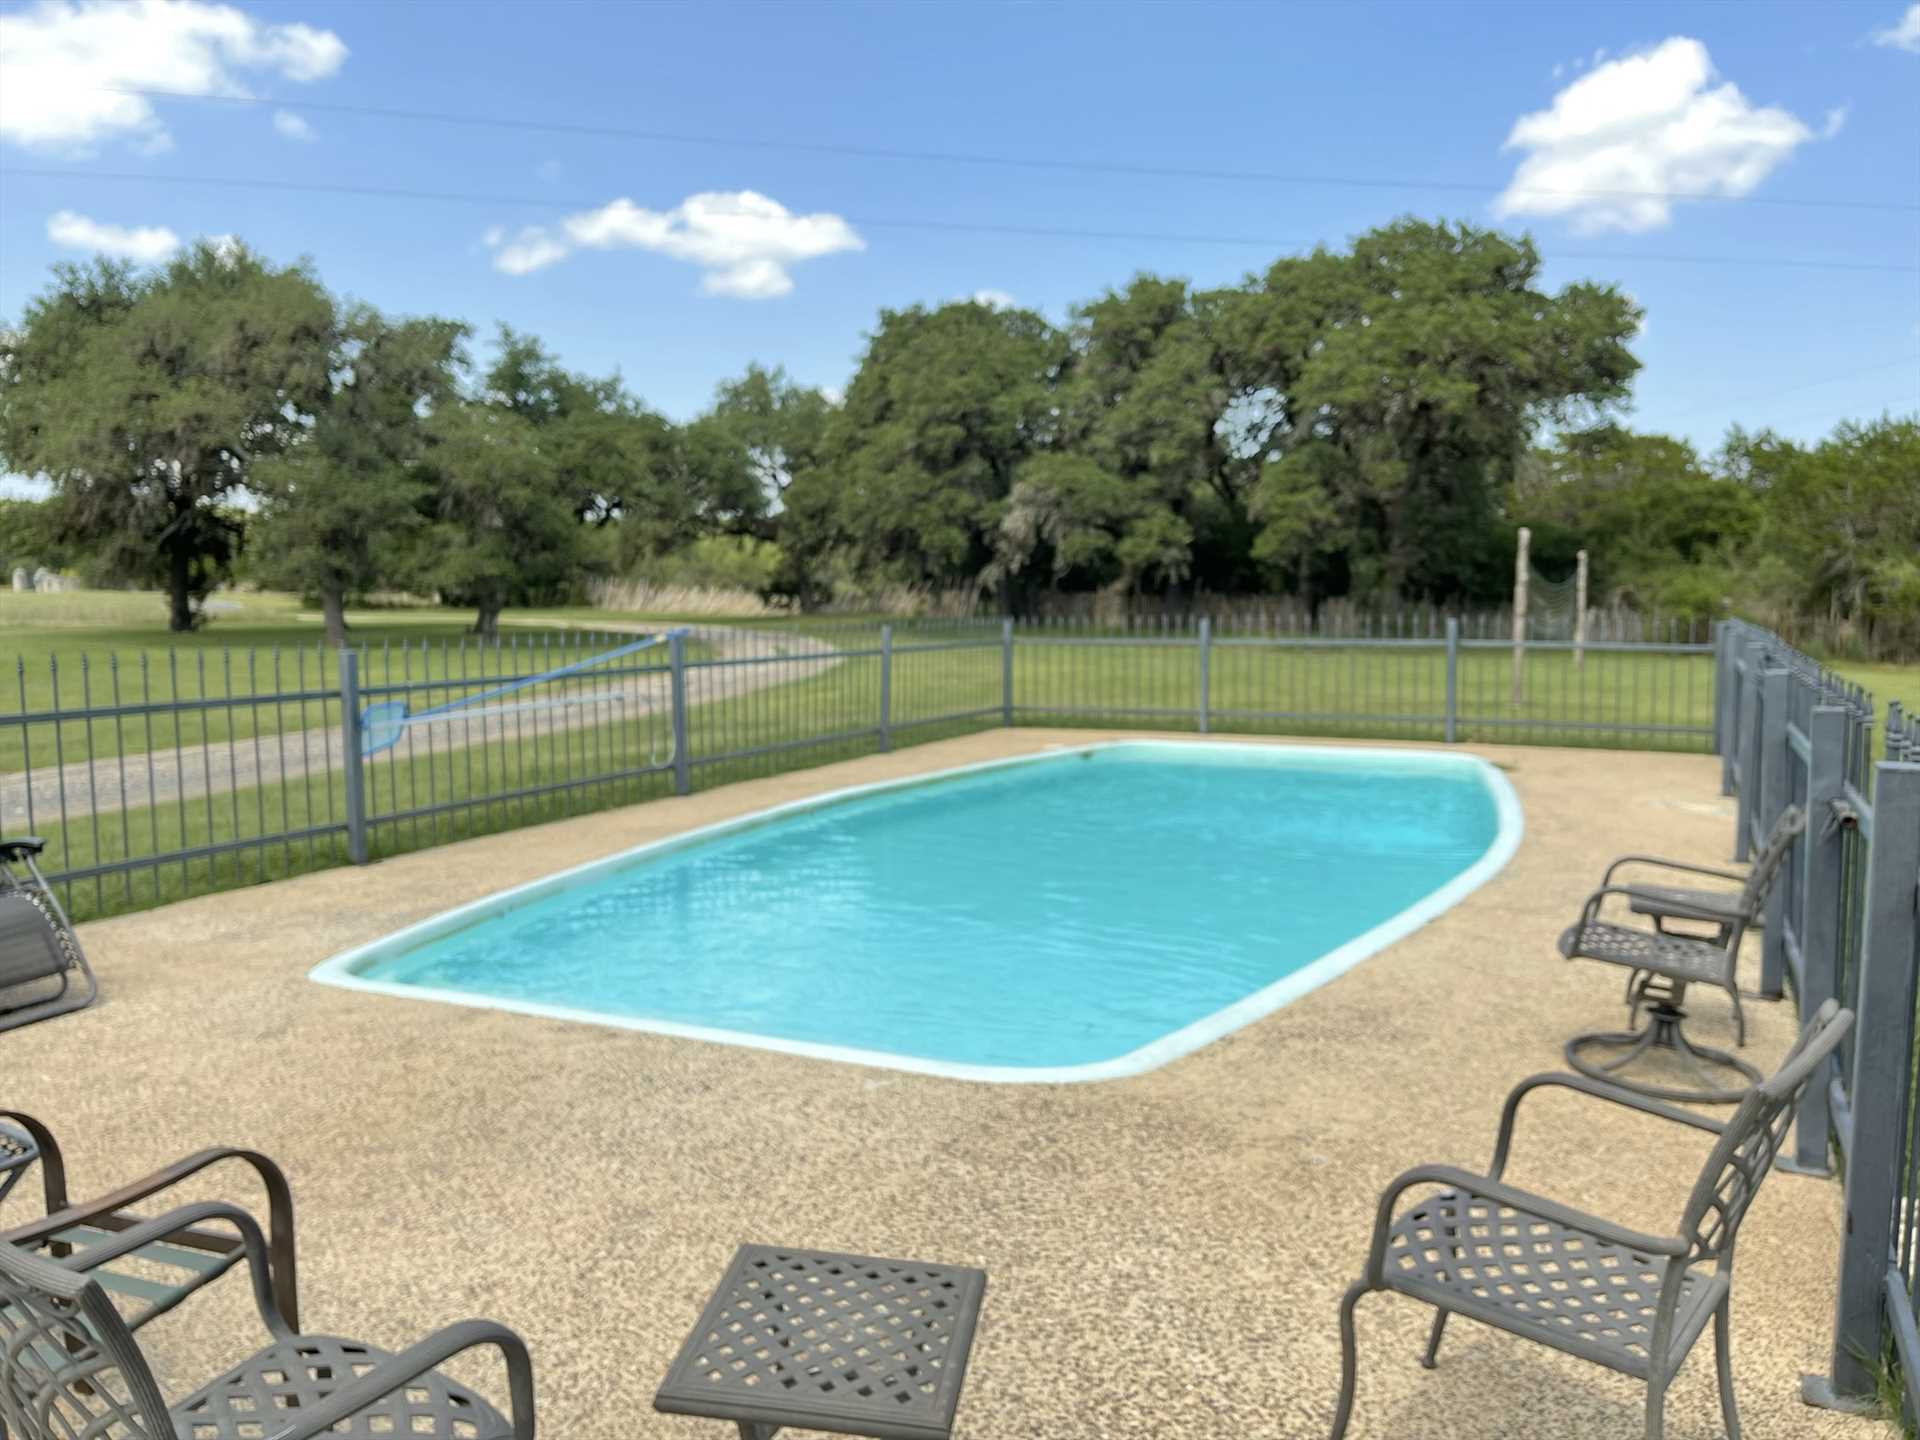 Make a splash-and take the edge off those hot Texas summers-with a cool swim in the crystal-clear pool.